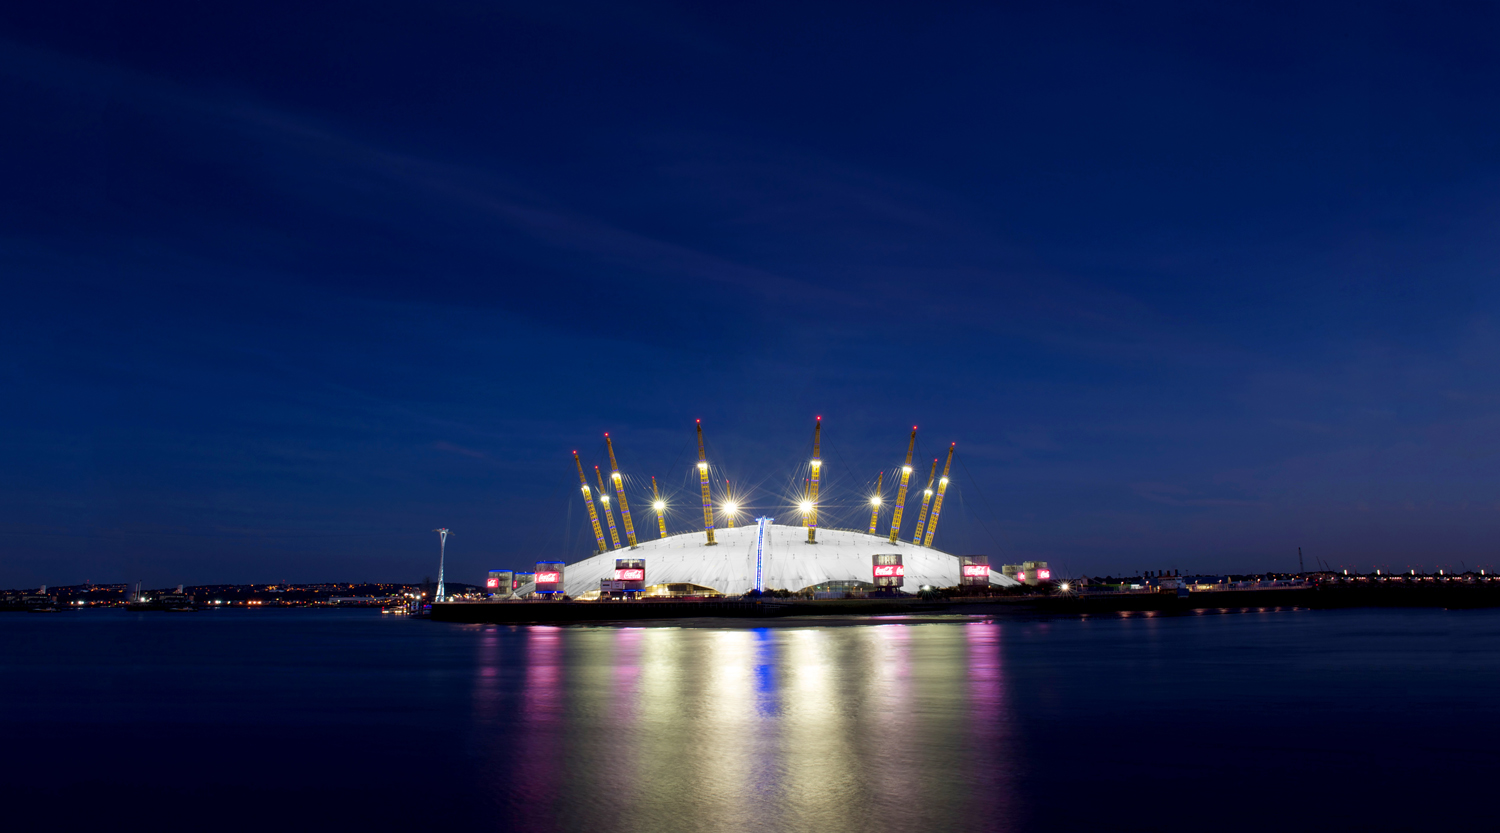 the 02 venue night panorama